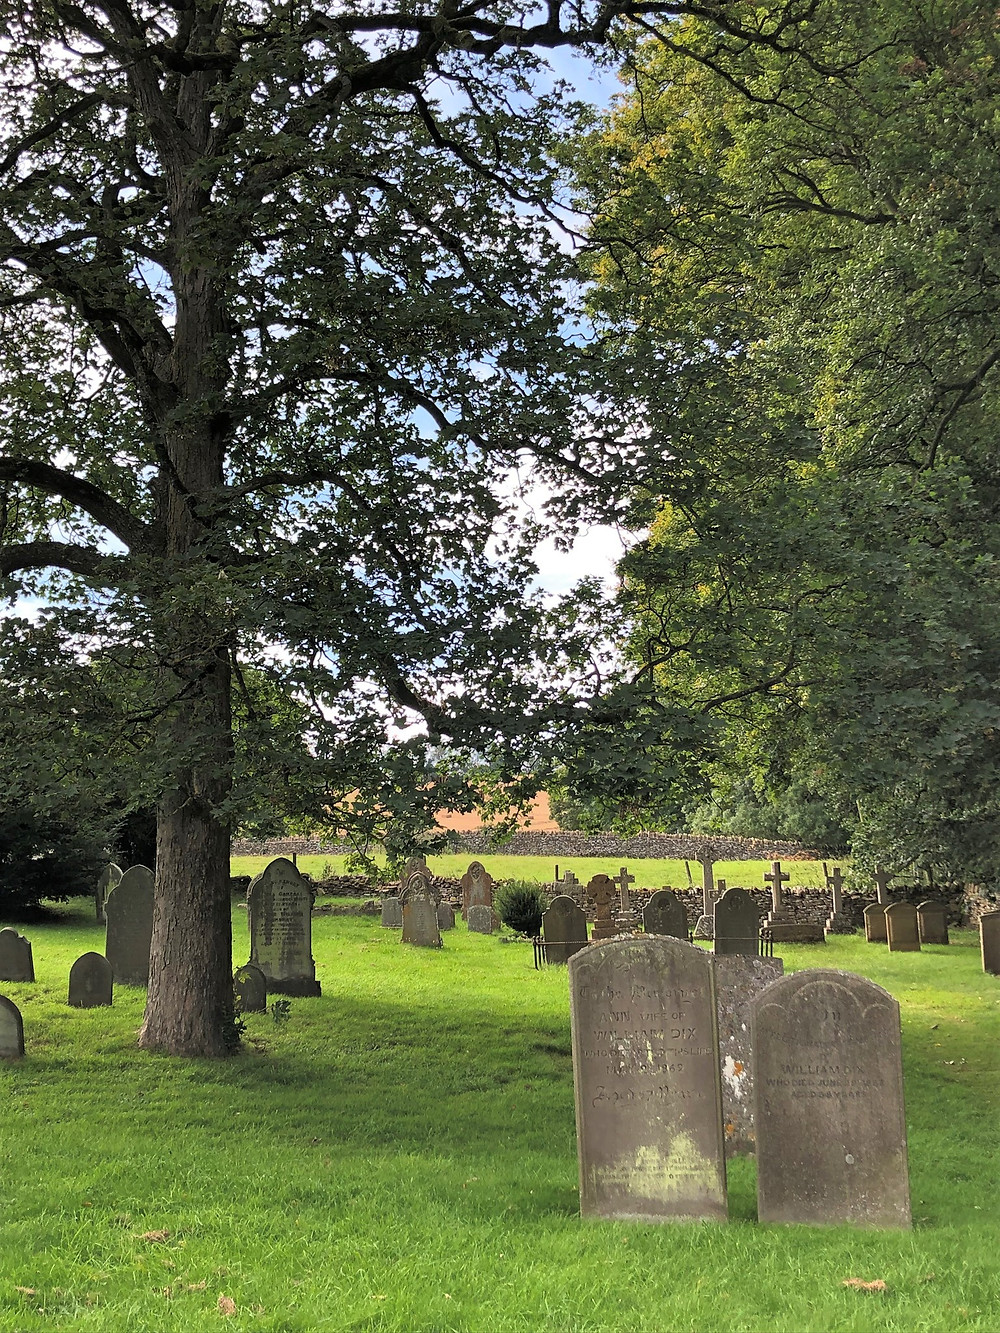 Cemetery at Church of St Peter's in Upper Slaughter of the Cotswolds